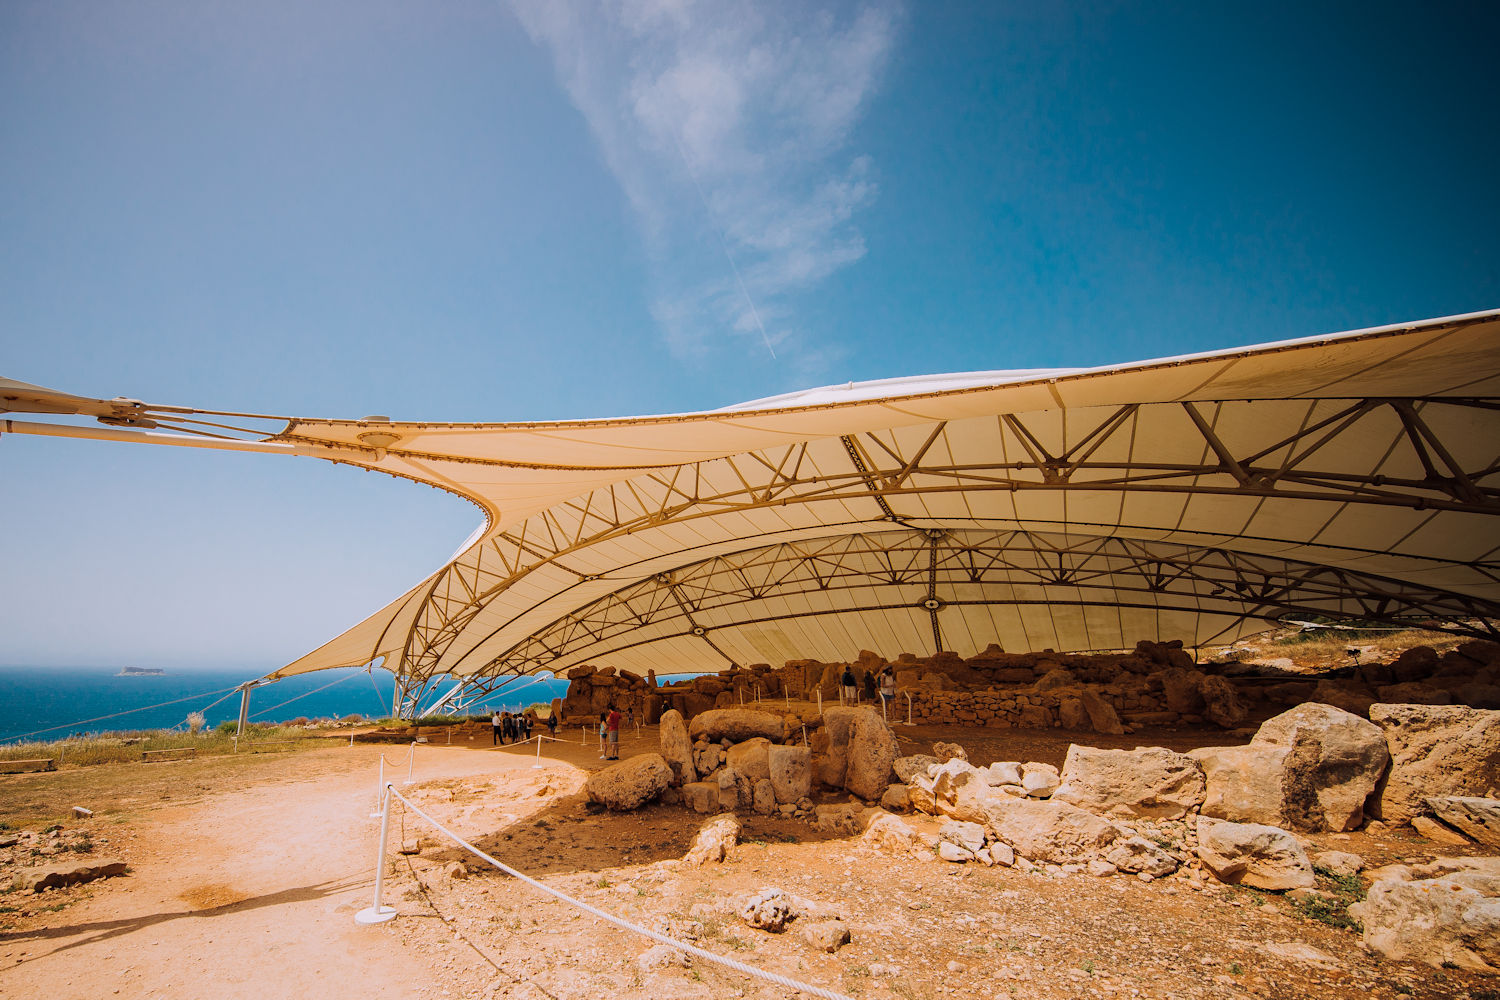 Megalithic temple Mnajdra in Zurrieq